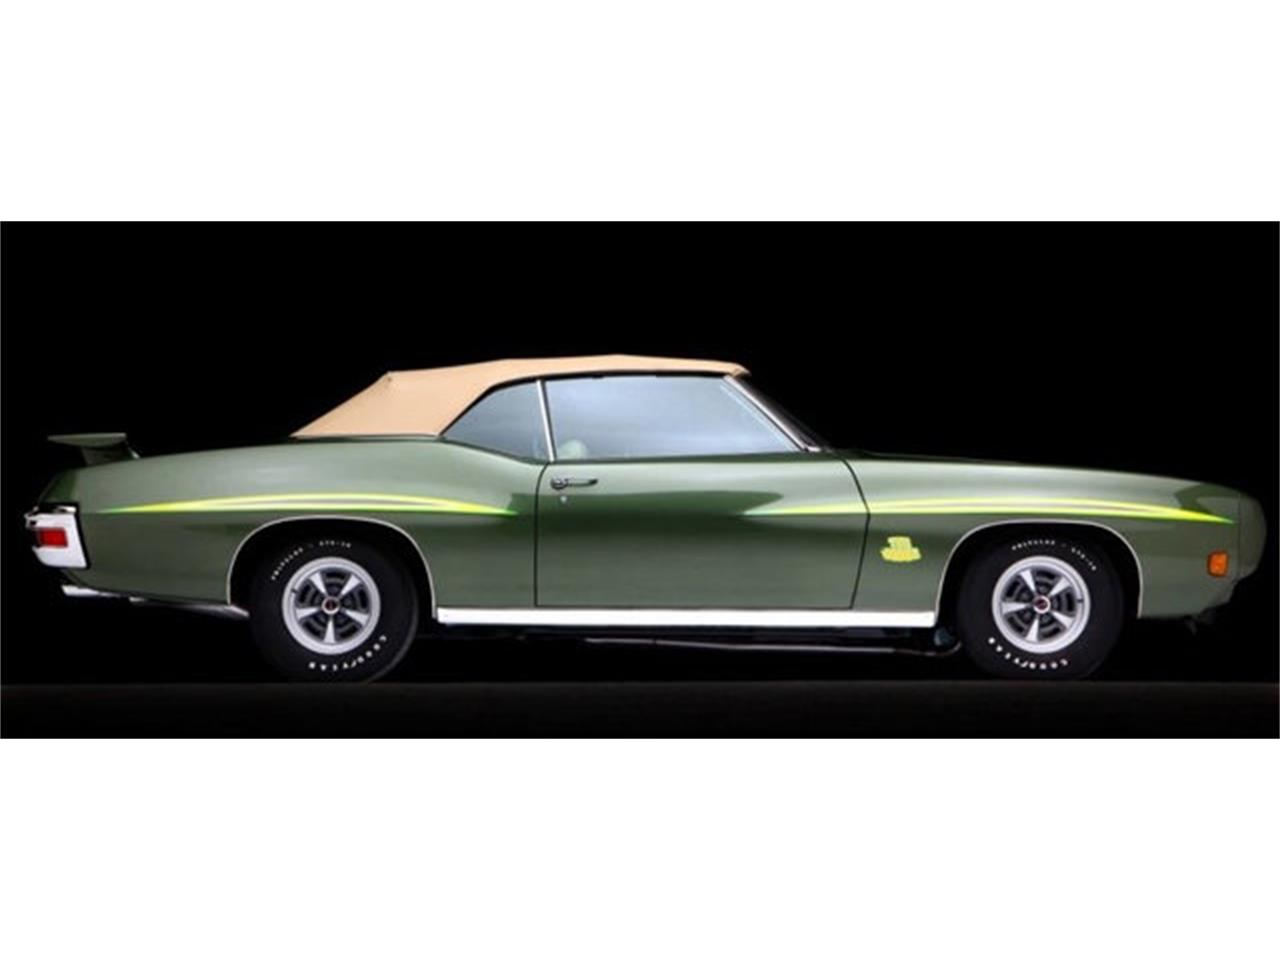 Large Picture of Classic 1970 Pontiac GTO (The Judge) - $219,000.00 Offered by Prestige Motor Car Co. - QDN8